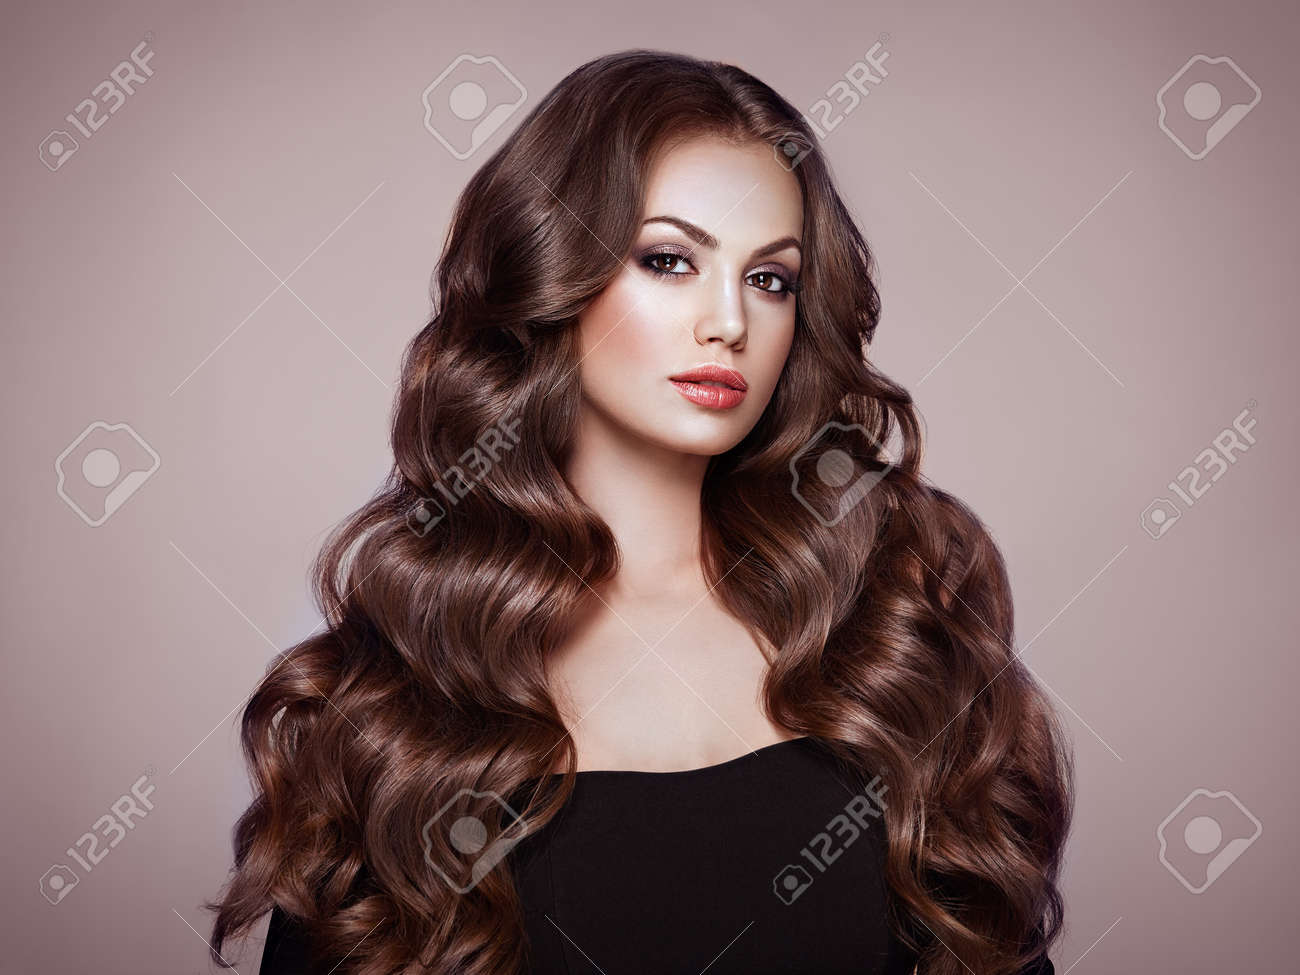 Brunette Girl with Long Healthy and Shiny Curly Hair. Care and Beauty. Beautiful Model Woman with Wavy Hairstyle. Make-Up and Black Dress - 112453340